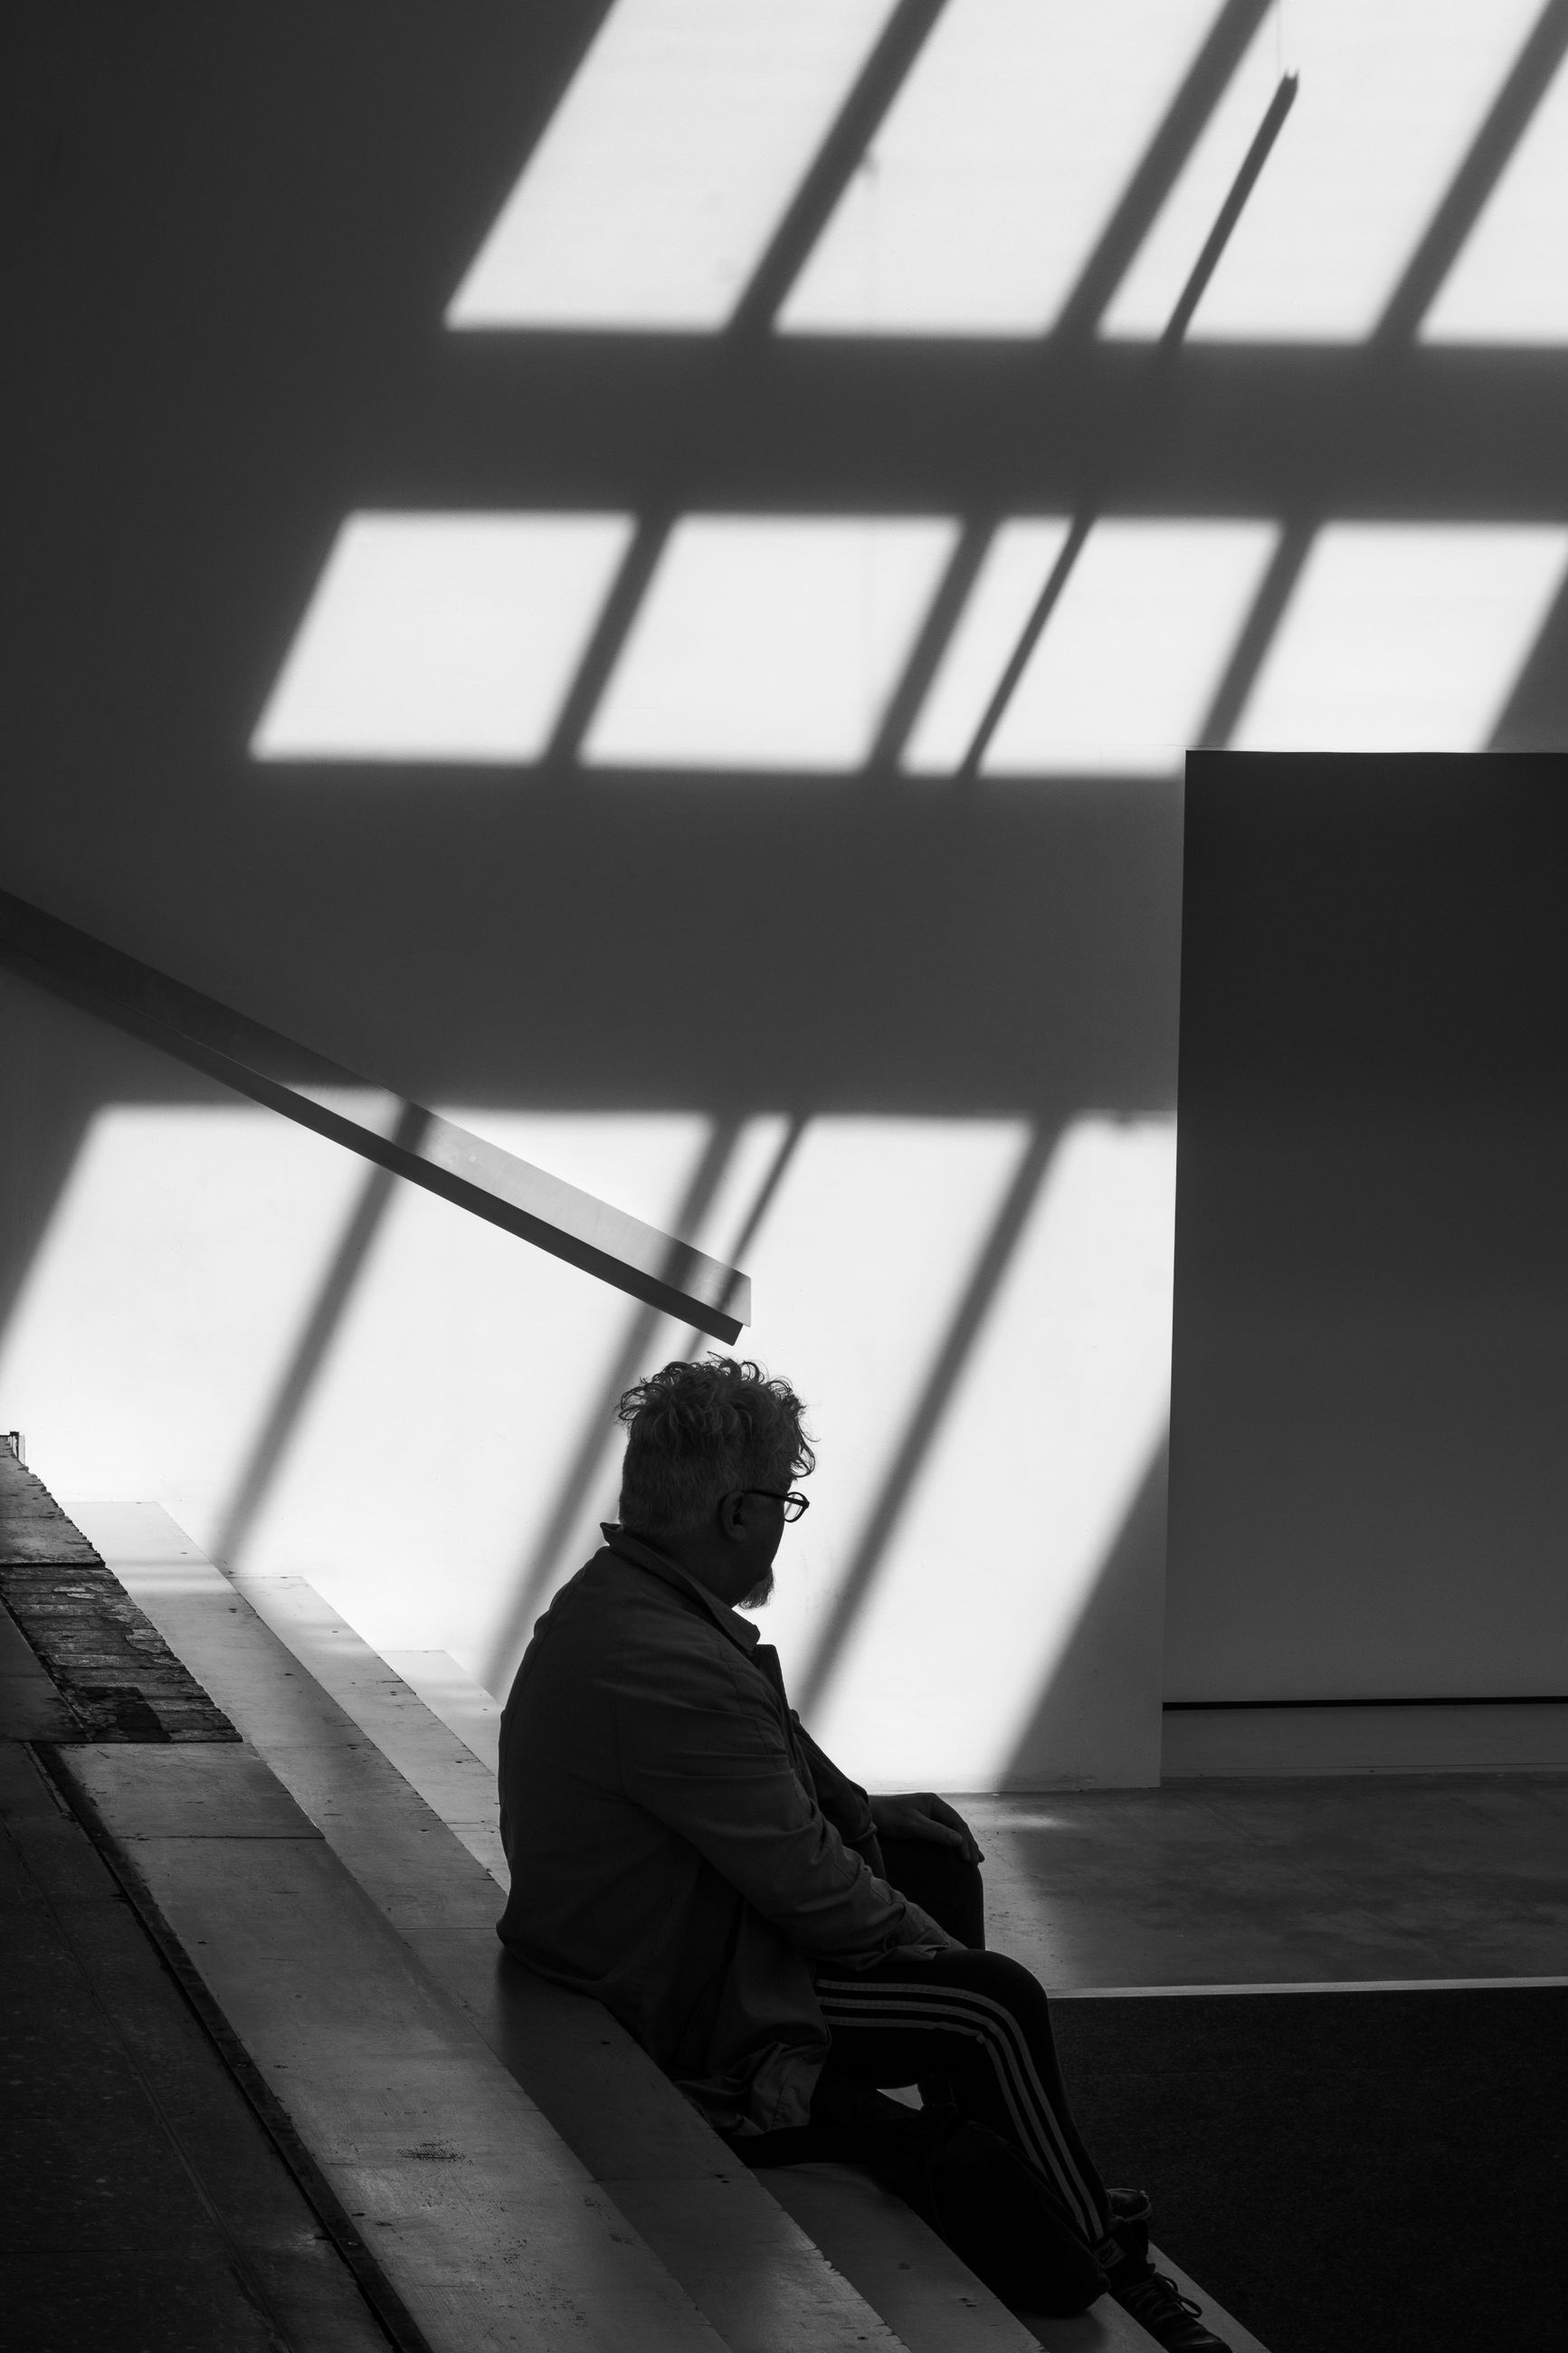 sitting, one person, side view, real people, wall - building feature, indoors, relaxation, built structure, architecture, day, home interior, sunlight, shadow, lifestyles, leisure activity, men, contemplation, clothing, adult, depression - sadness, social issues